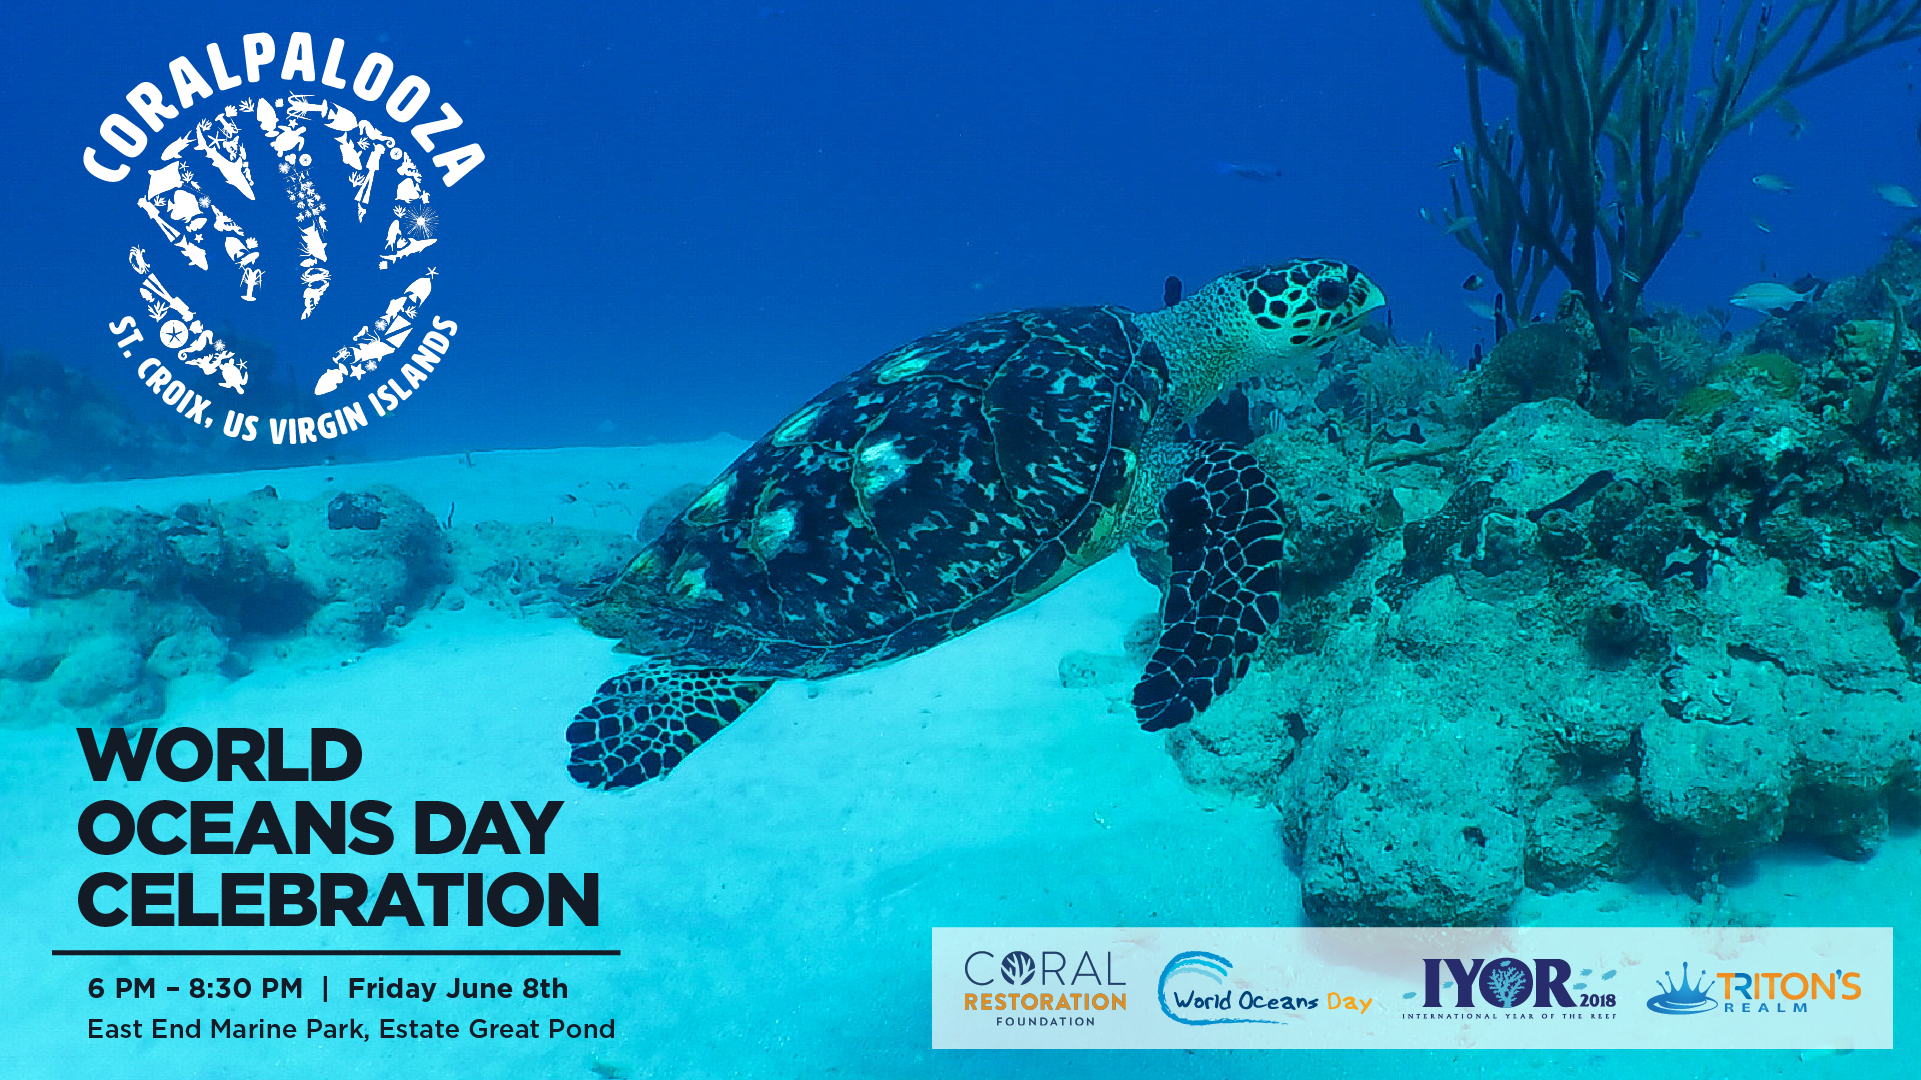 Coralpalooza: St. Croix, USVI – World Oceans Day & IYOR Celebrations